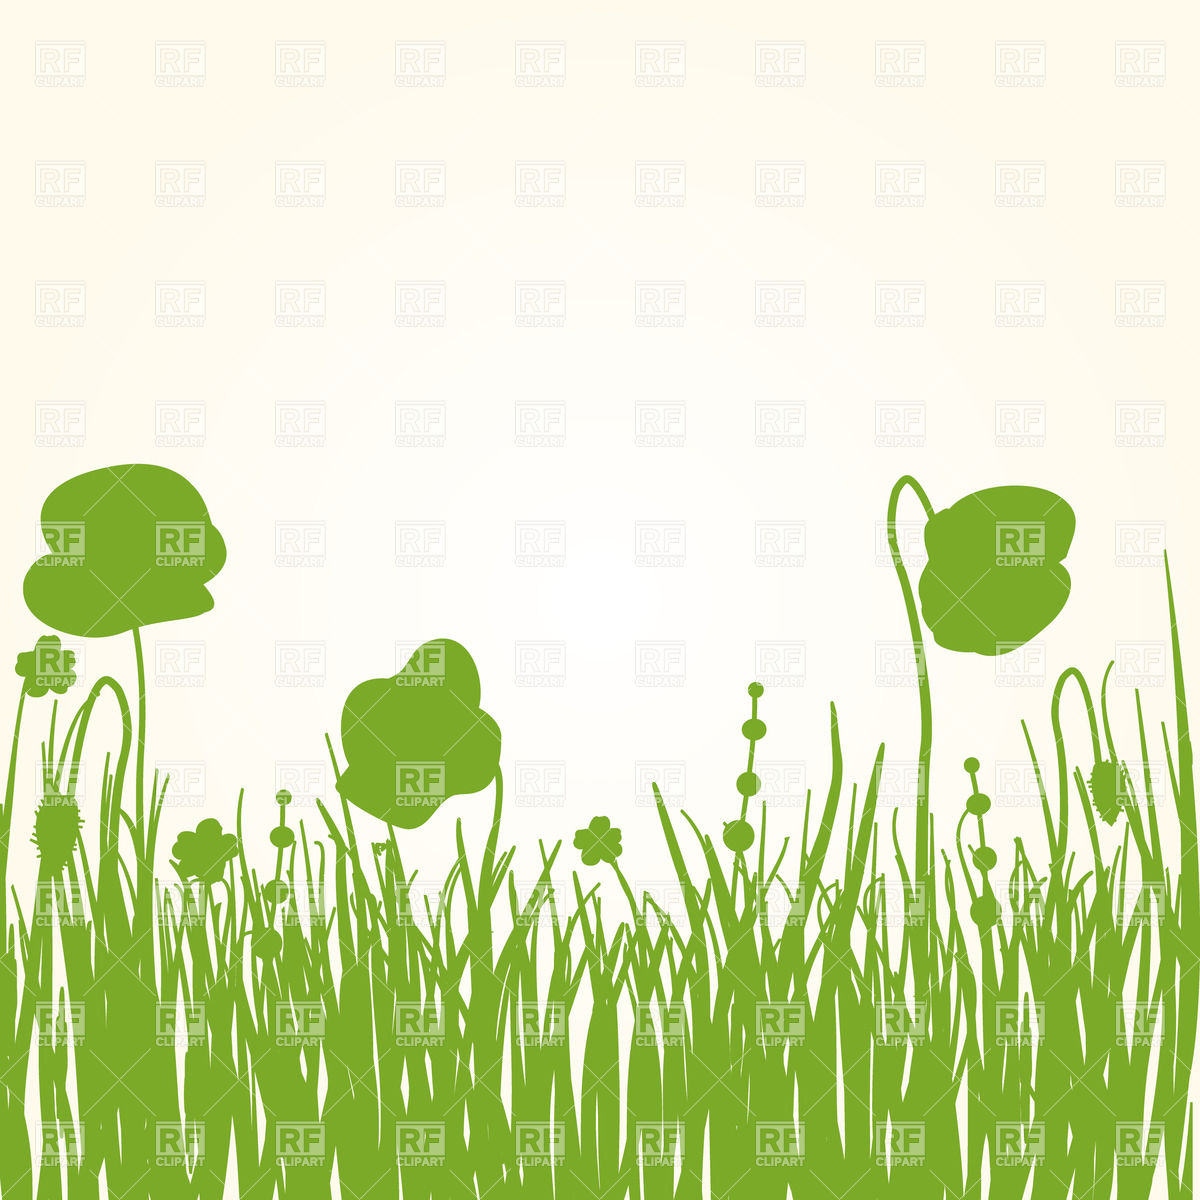 Green grass with flower silhouettes Vector Image #22829.